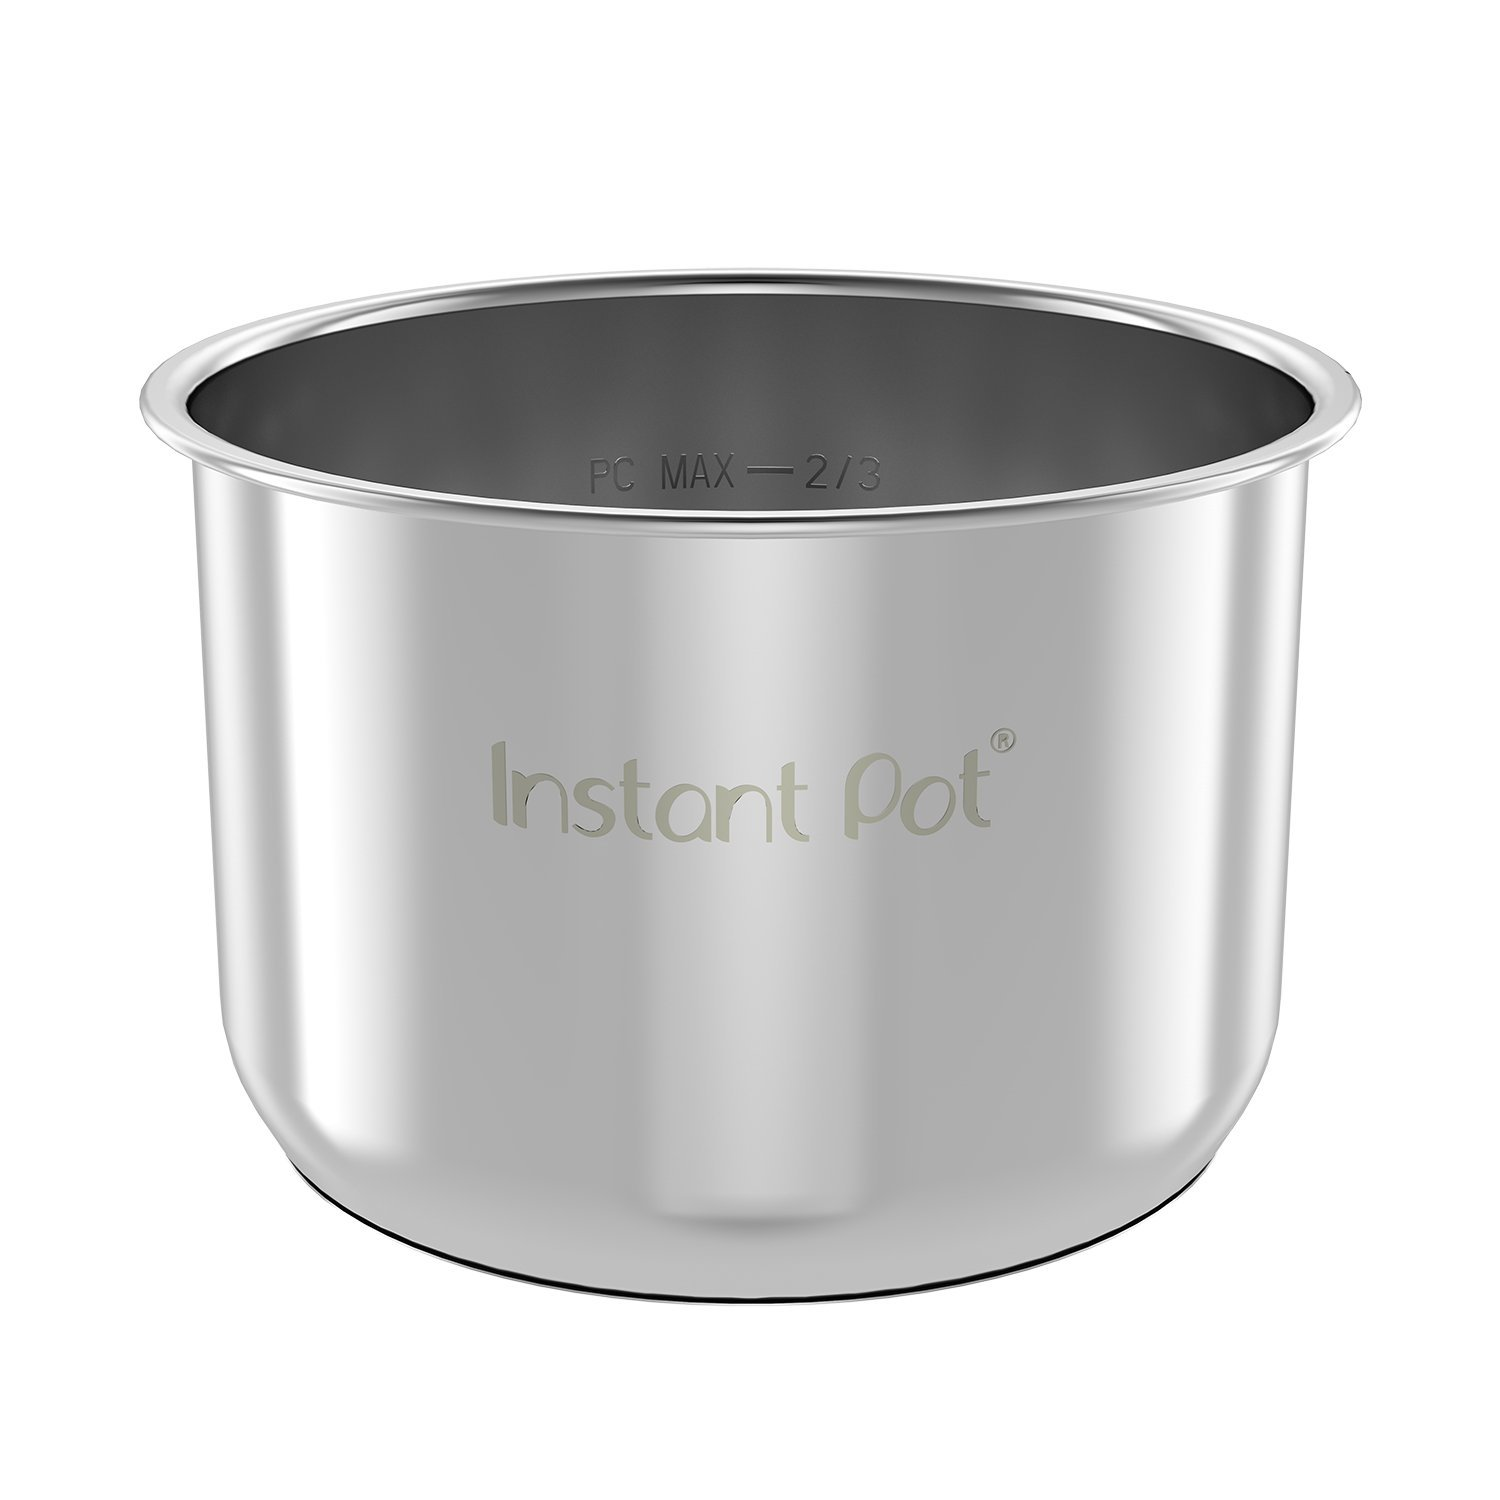 Instant Pot Accessory Stainless Steel Inner Cooking Pot